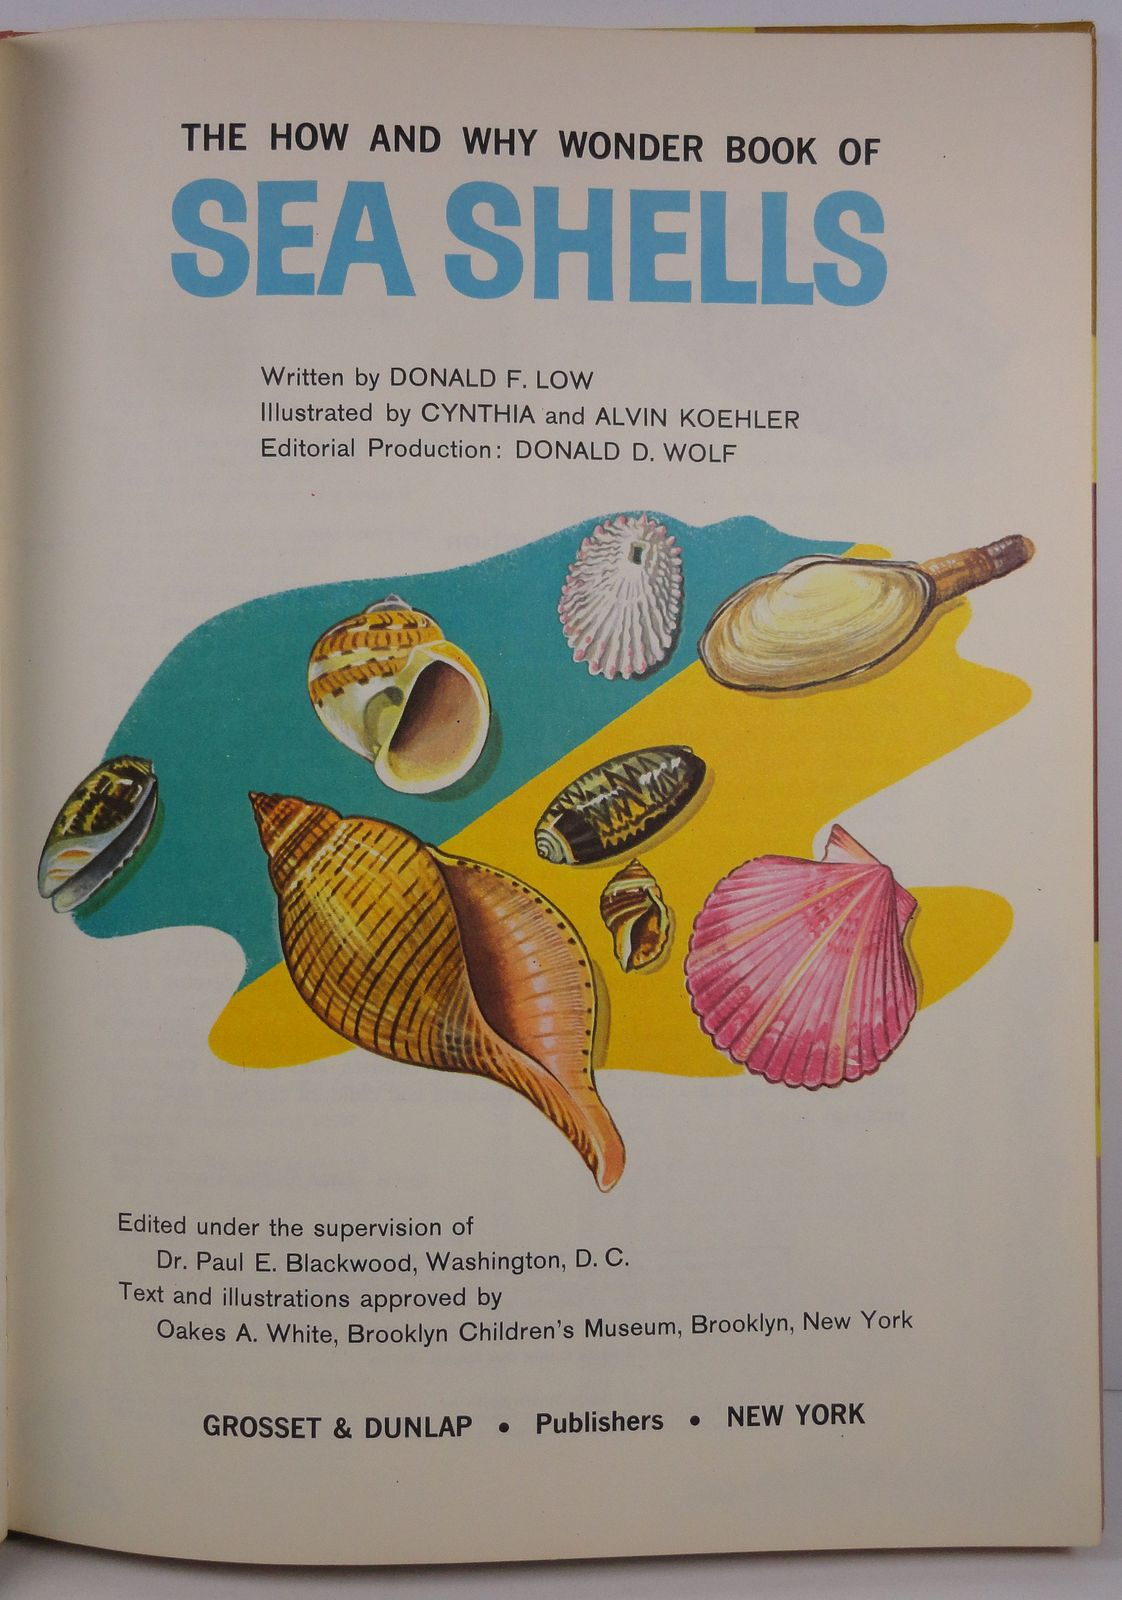 The How and Why Wonder Book of Sea Shells Donald F. Low